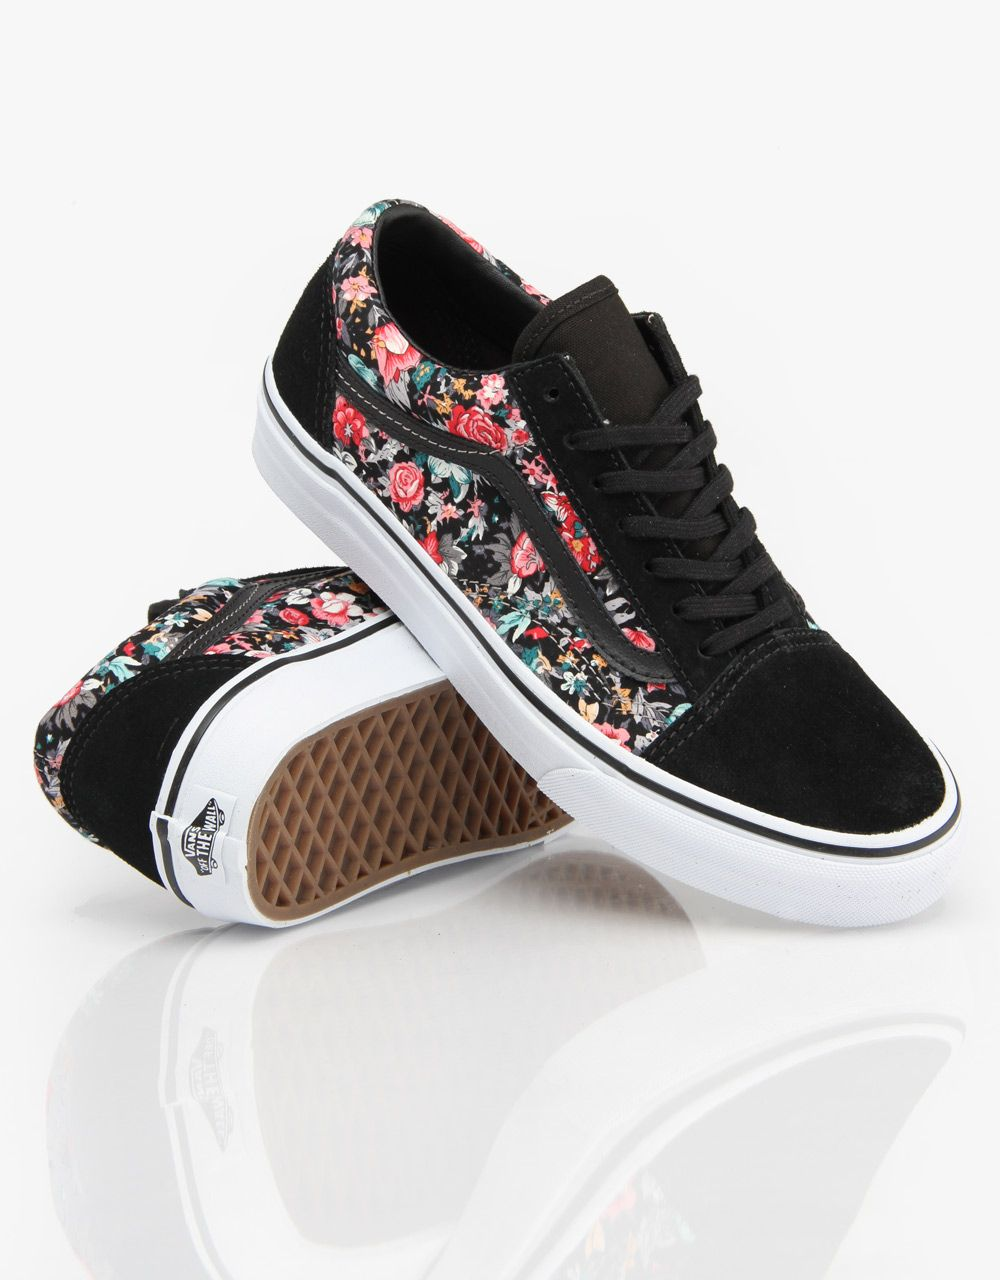 dac994c5054 Vans Old Skool Girls Skate Shoes - Multi Floral Black True White -  RouteOne.co.uk